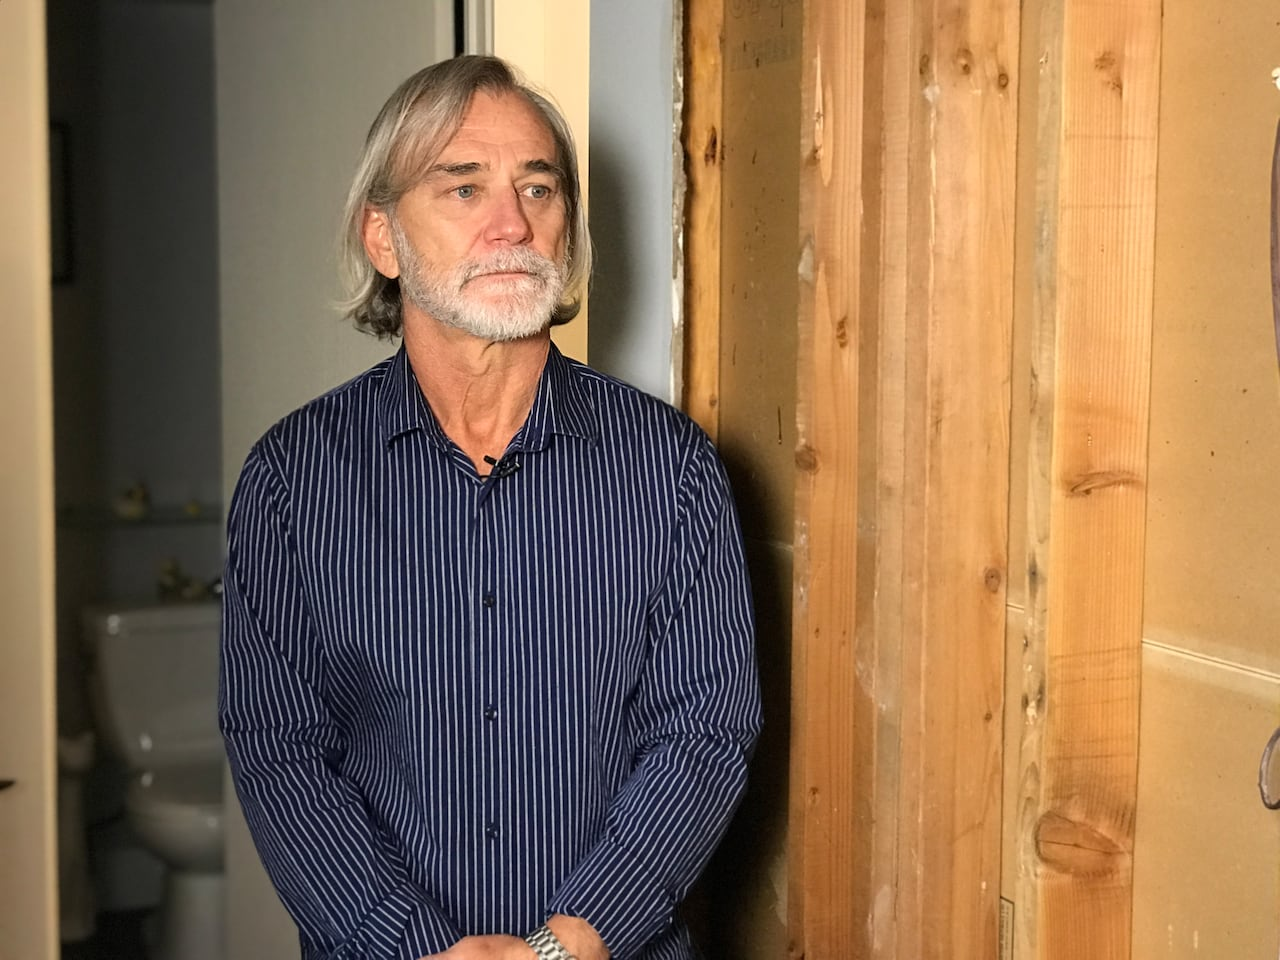 Vancouver man says he's 'stuck living in an unsafe home' after alleged renovation gone wrong